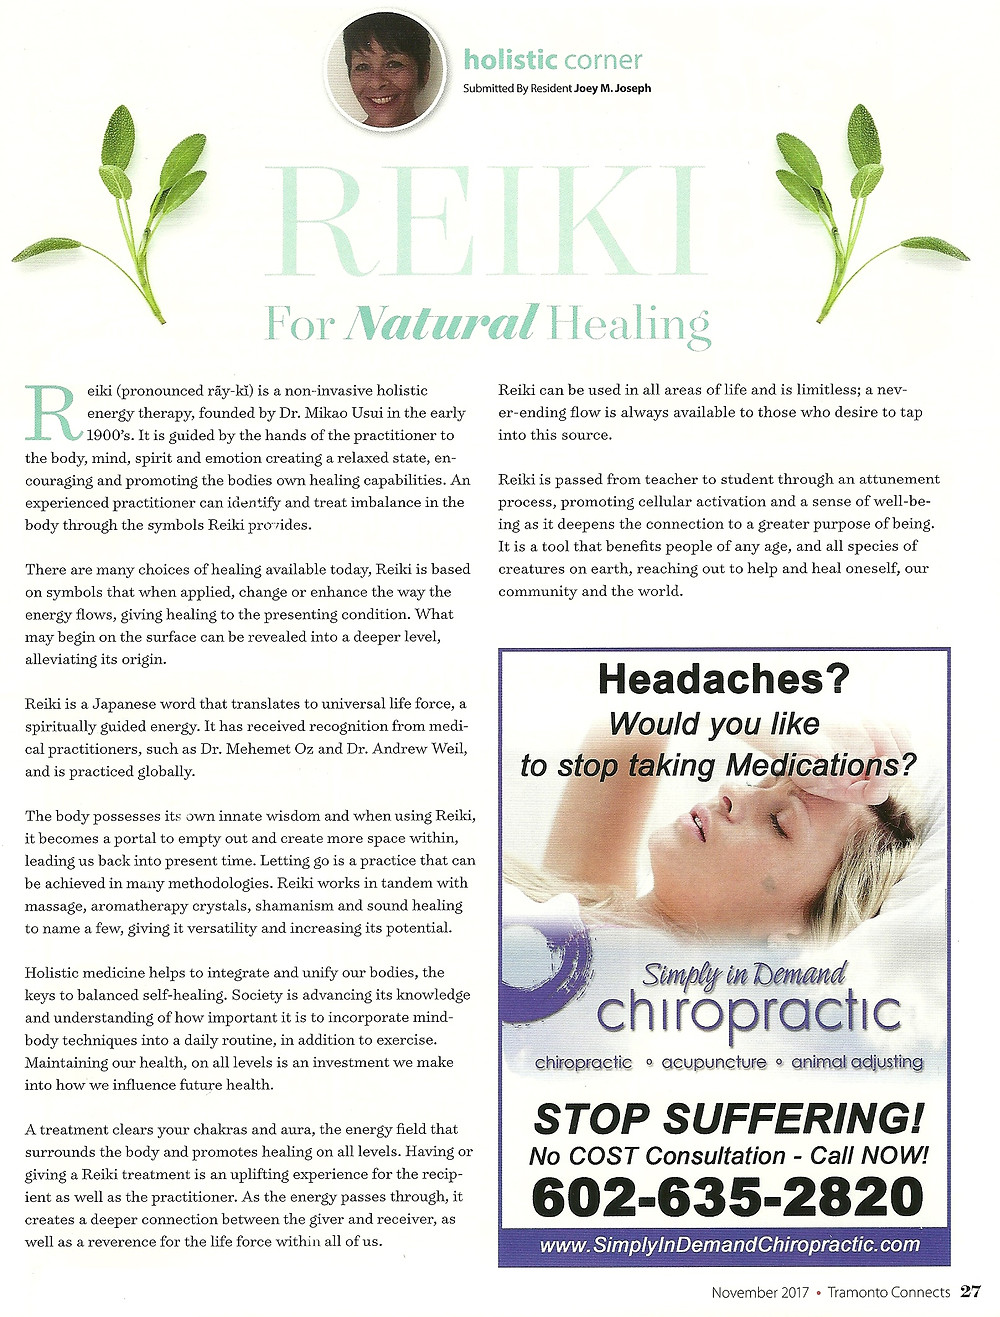 Reiki article in Tramanto connects